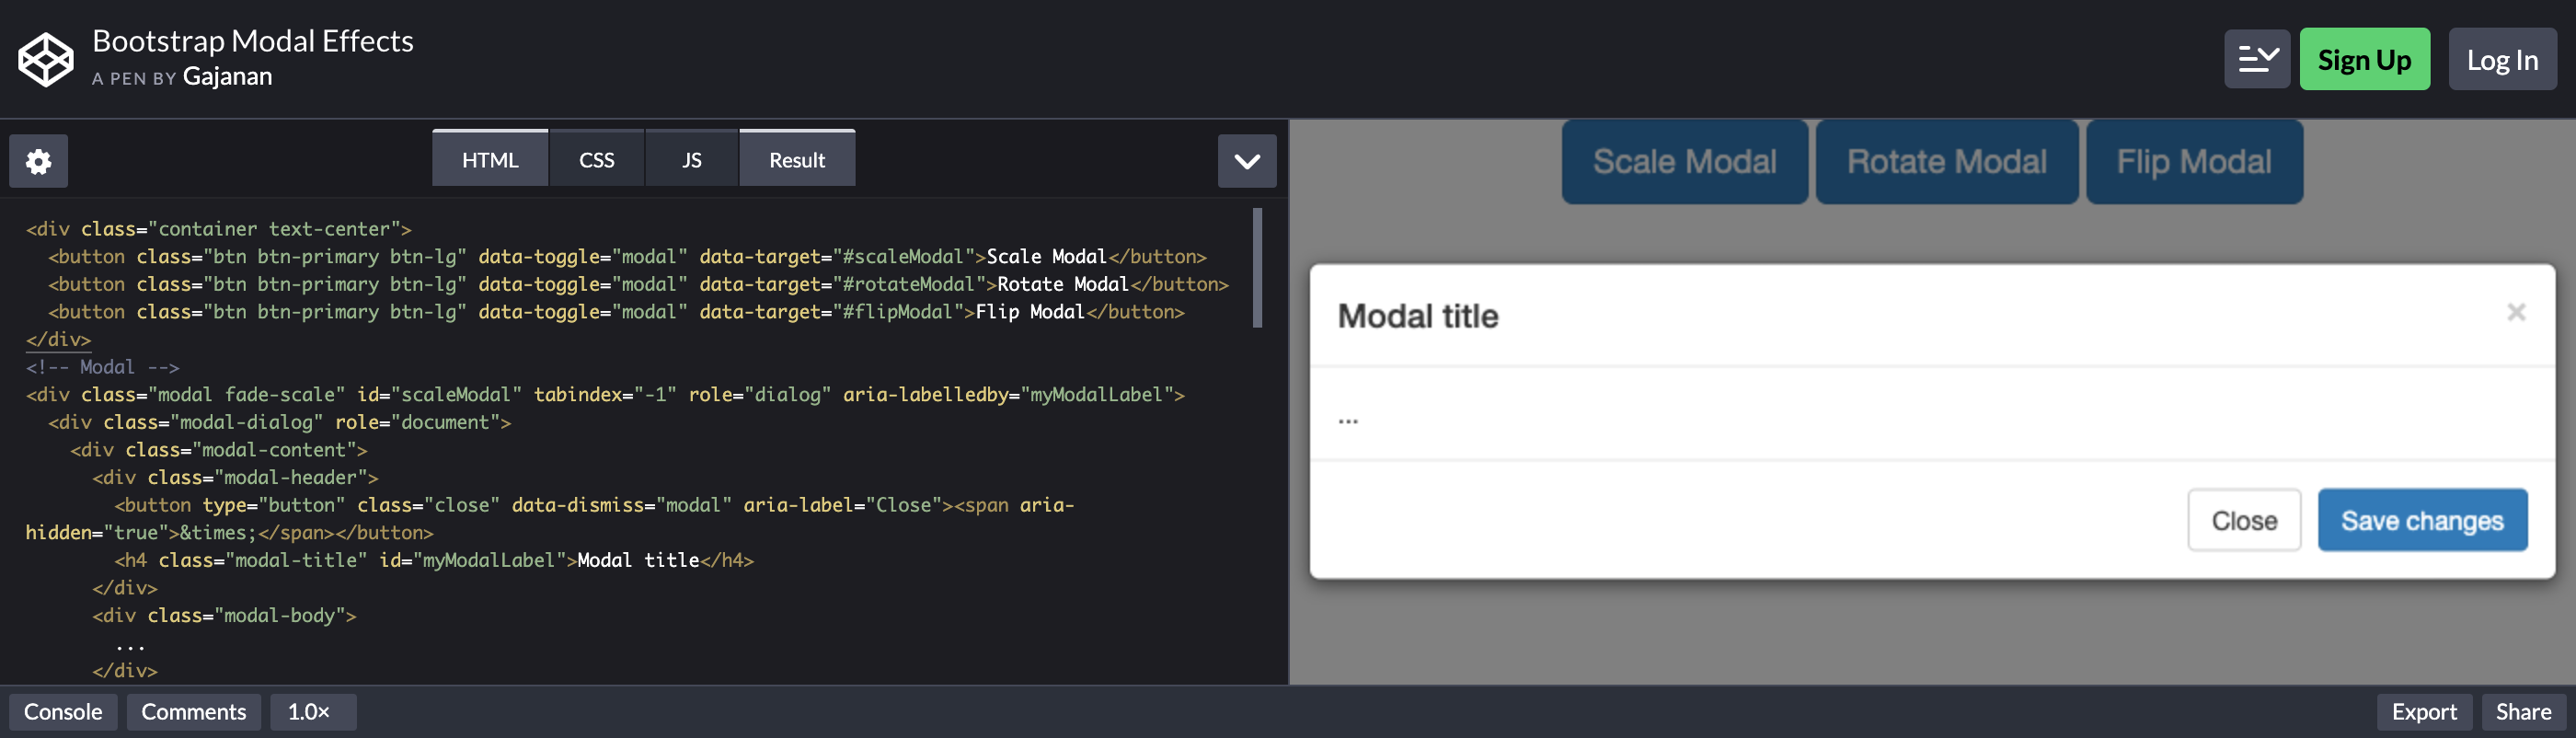 bootstrap modal effects